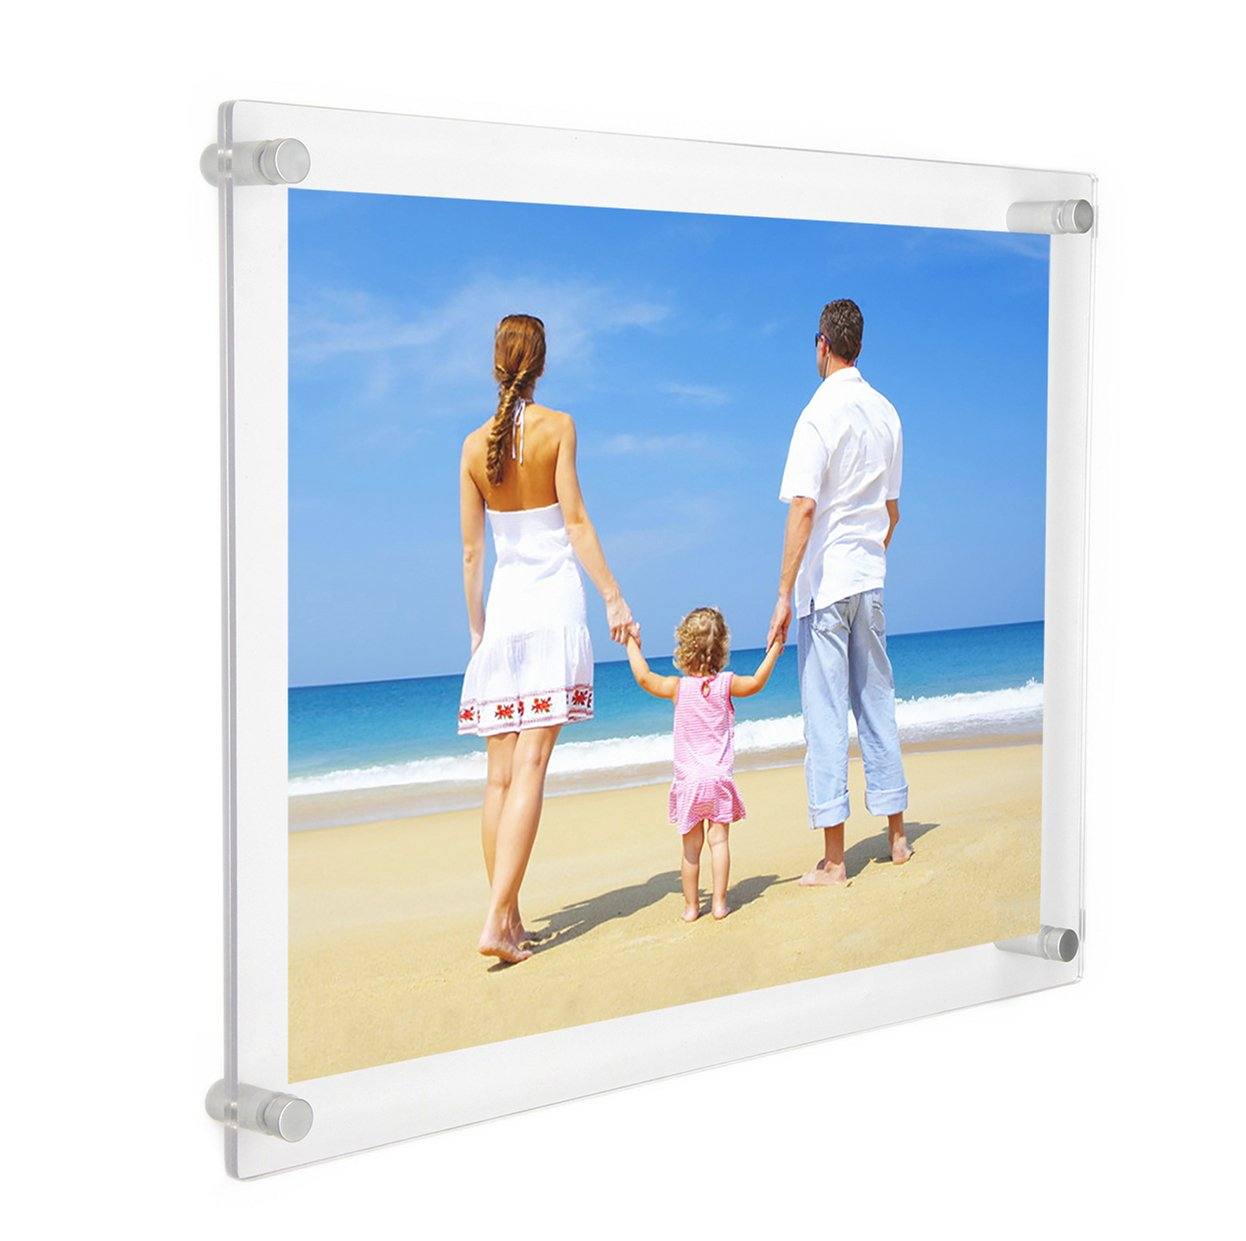 Clear Acrylic Wall Mount Floating Frameless Picture Frame Up to 6x9 Photo for Art Photography Frames-Double Panel(Full Frame is 8x10 inch) NIUBEE NBPN-501K